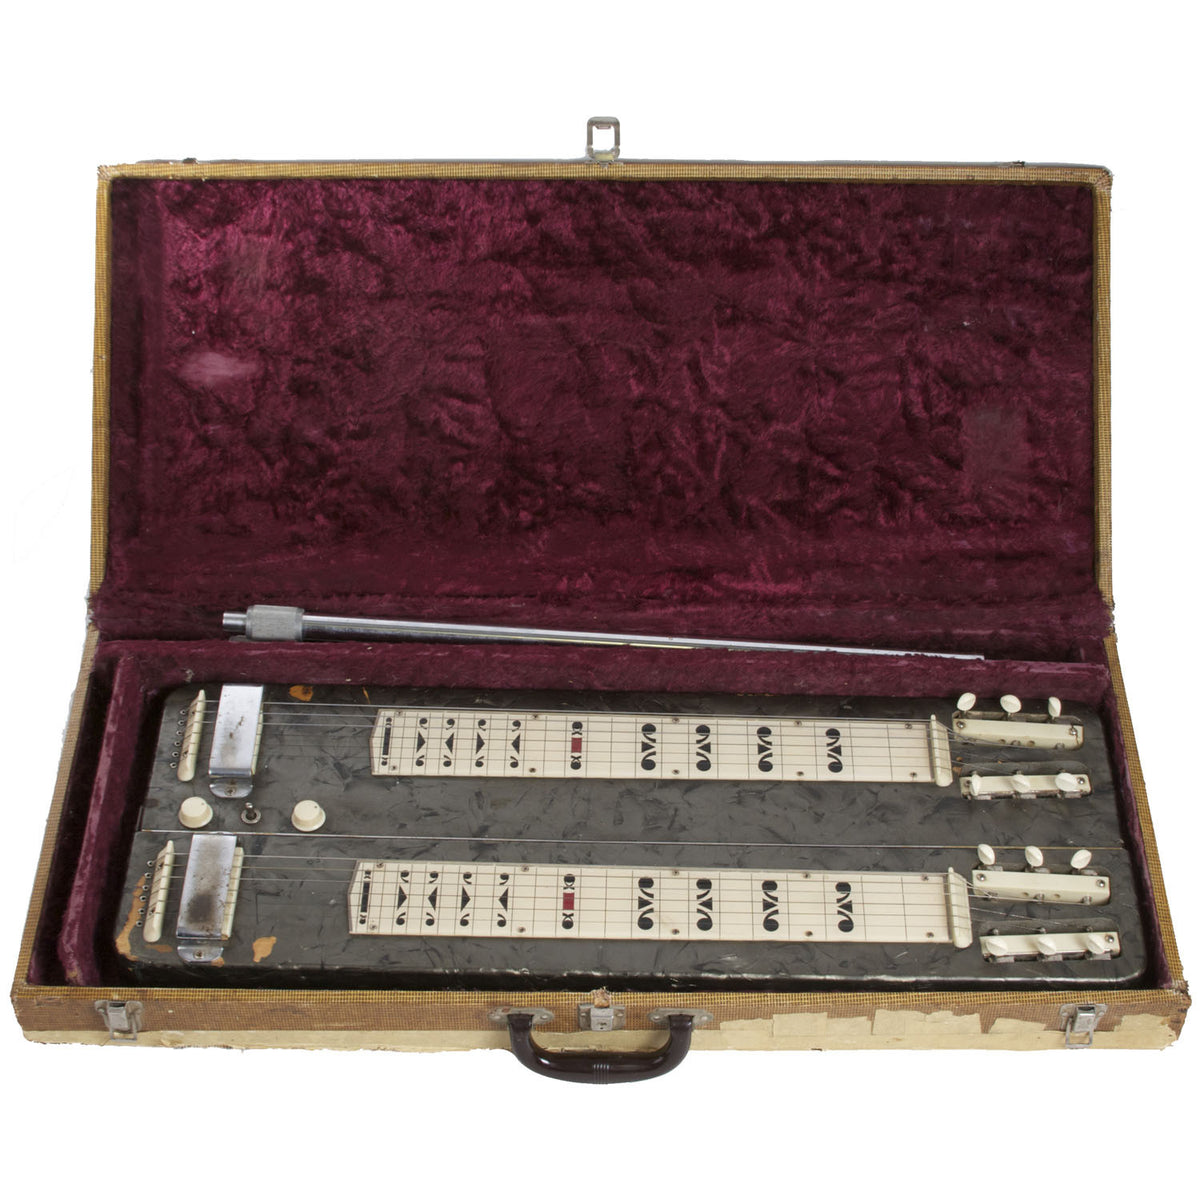 1953/1954 Carvin 6605 Lap Steel - Garrett Park Guitars  - 5